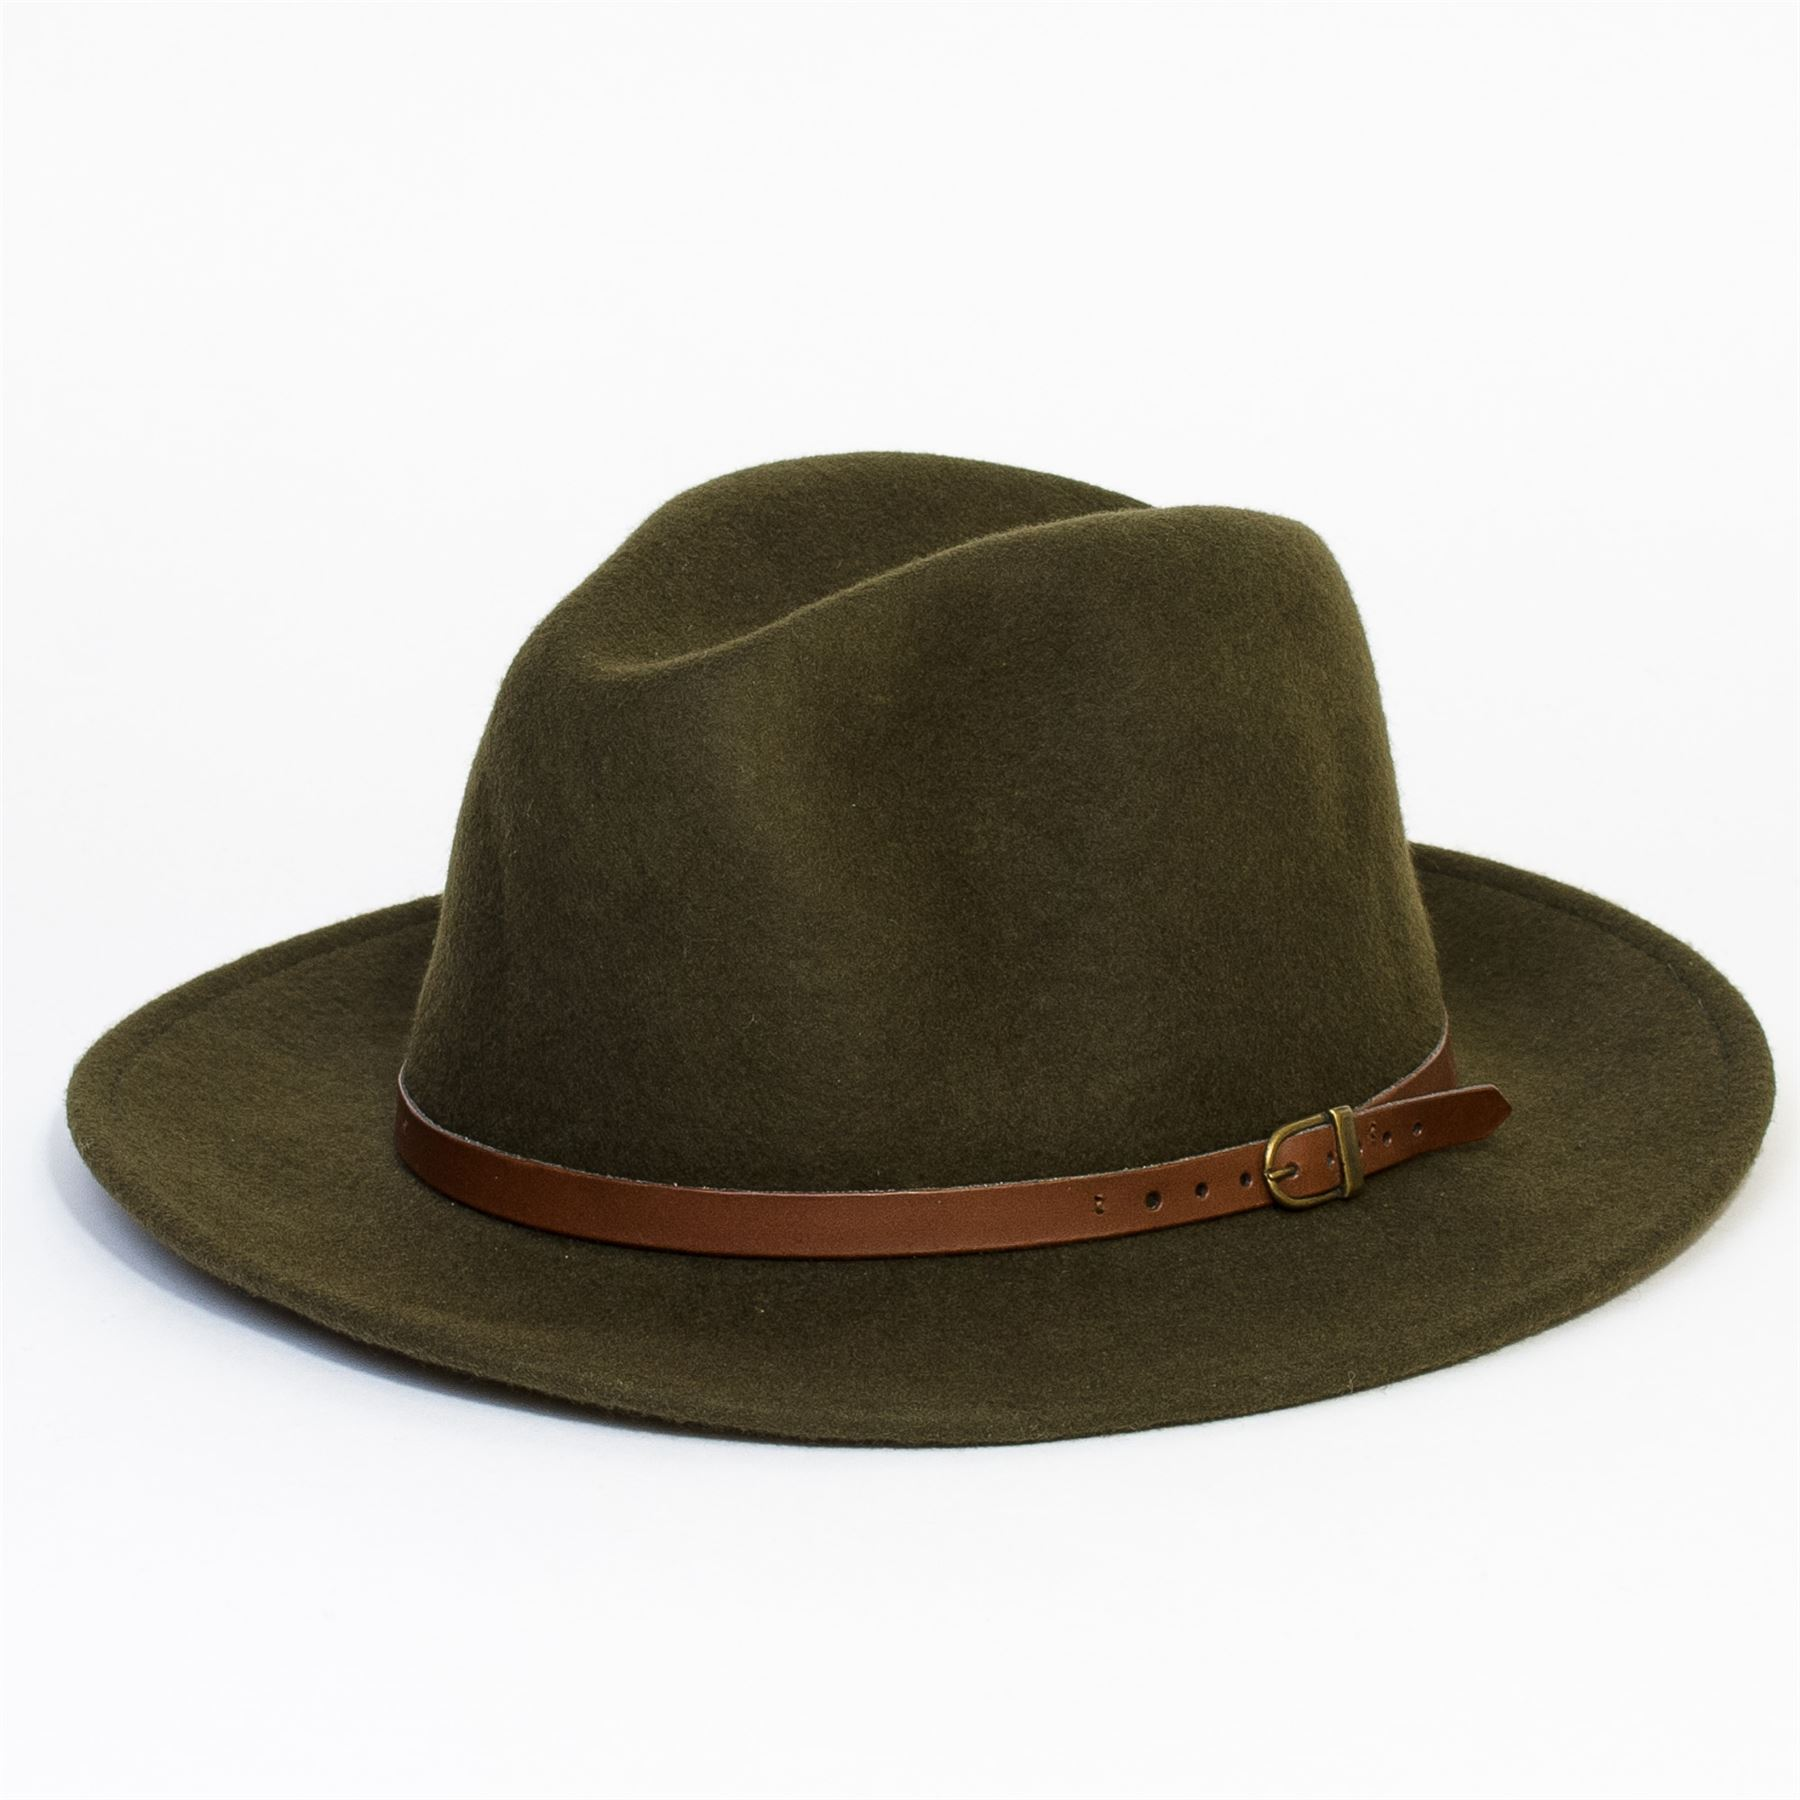 Product Rating for Jaxon Hats C-Crown Crushable Wool Felt Fedora Hat This item is discountable using a coupon. Jaxon Hats Blues Crushable Wool Felt Trilby Fedora Hat.